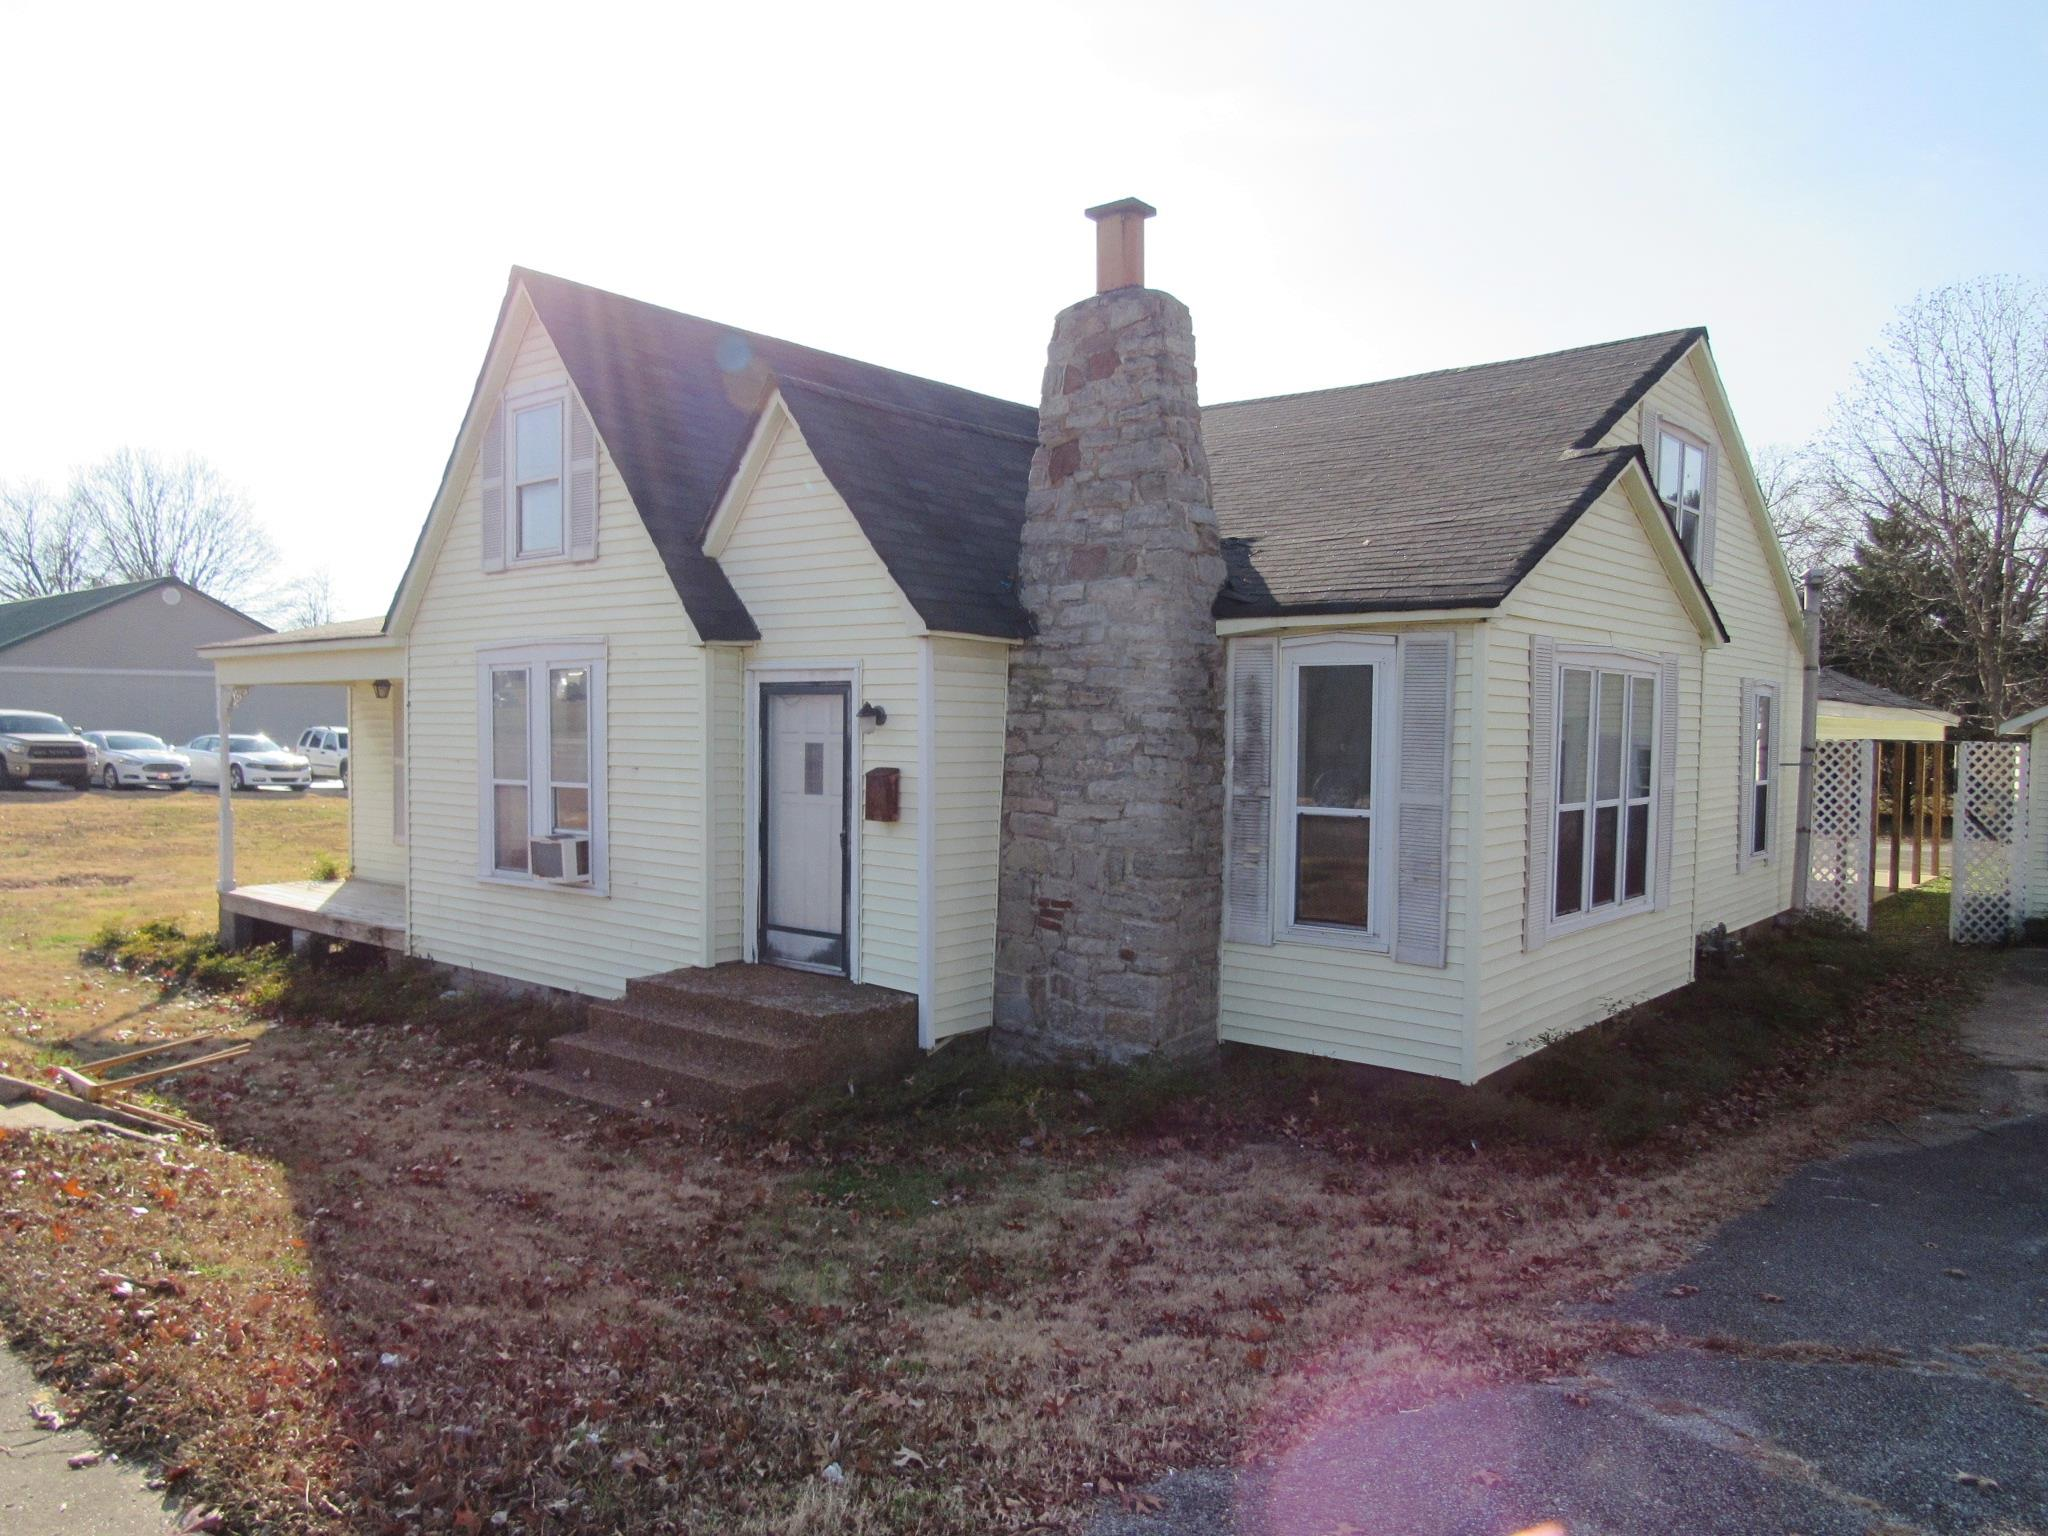 233 Tn Ave N Property Photo - Parsons, TN real estate listing